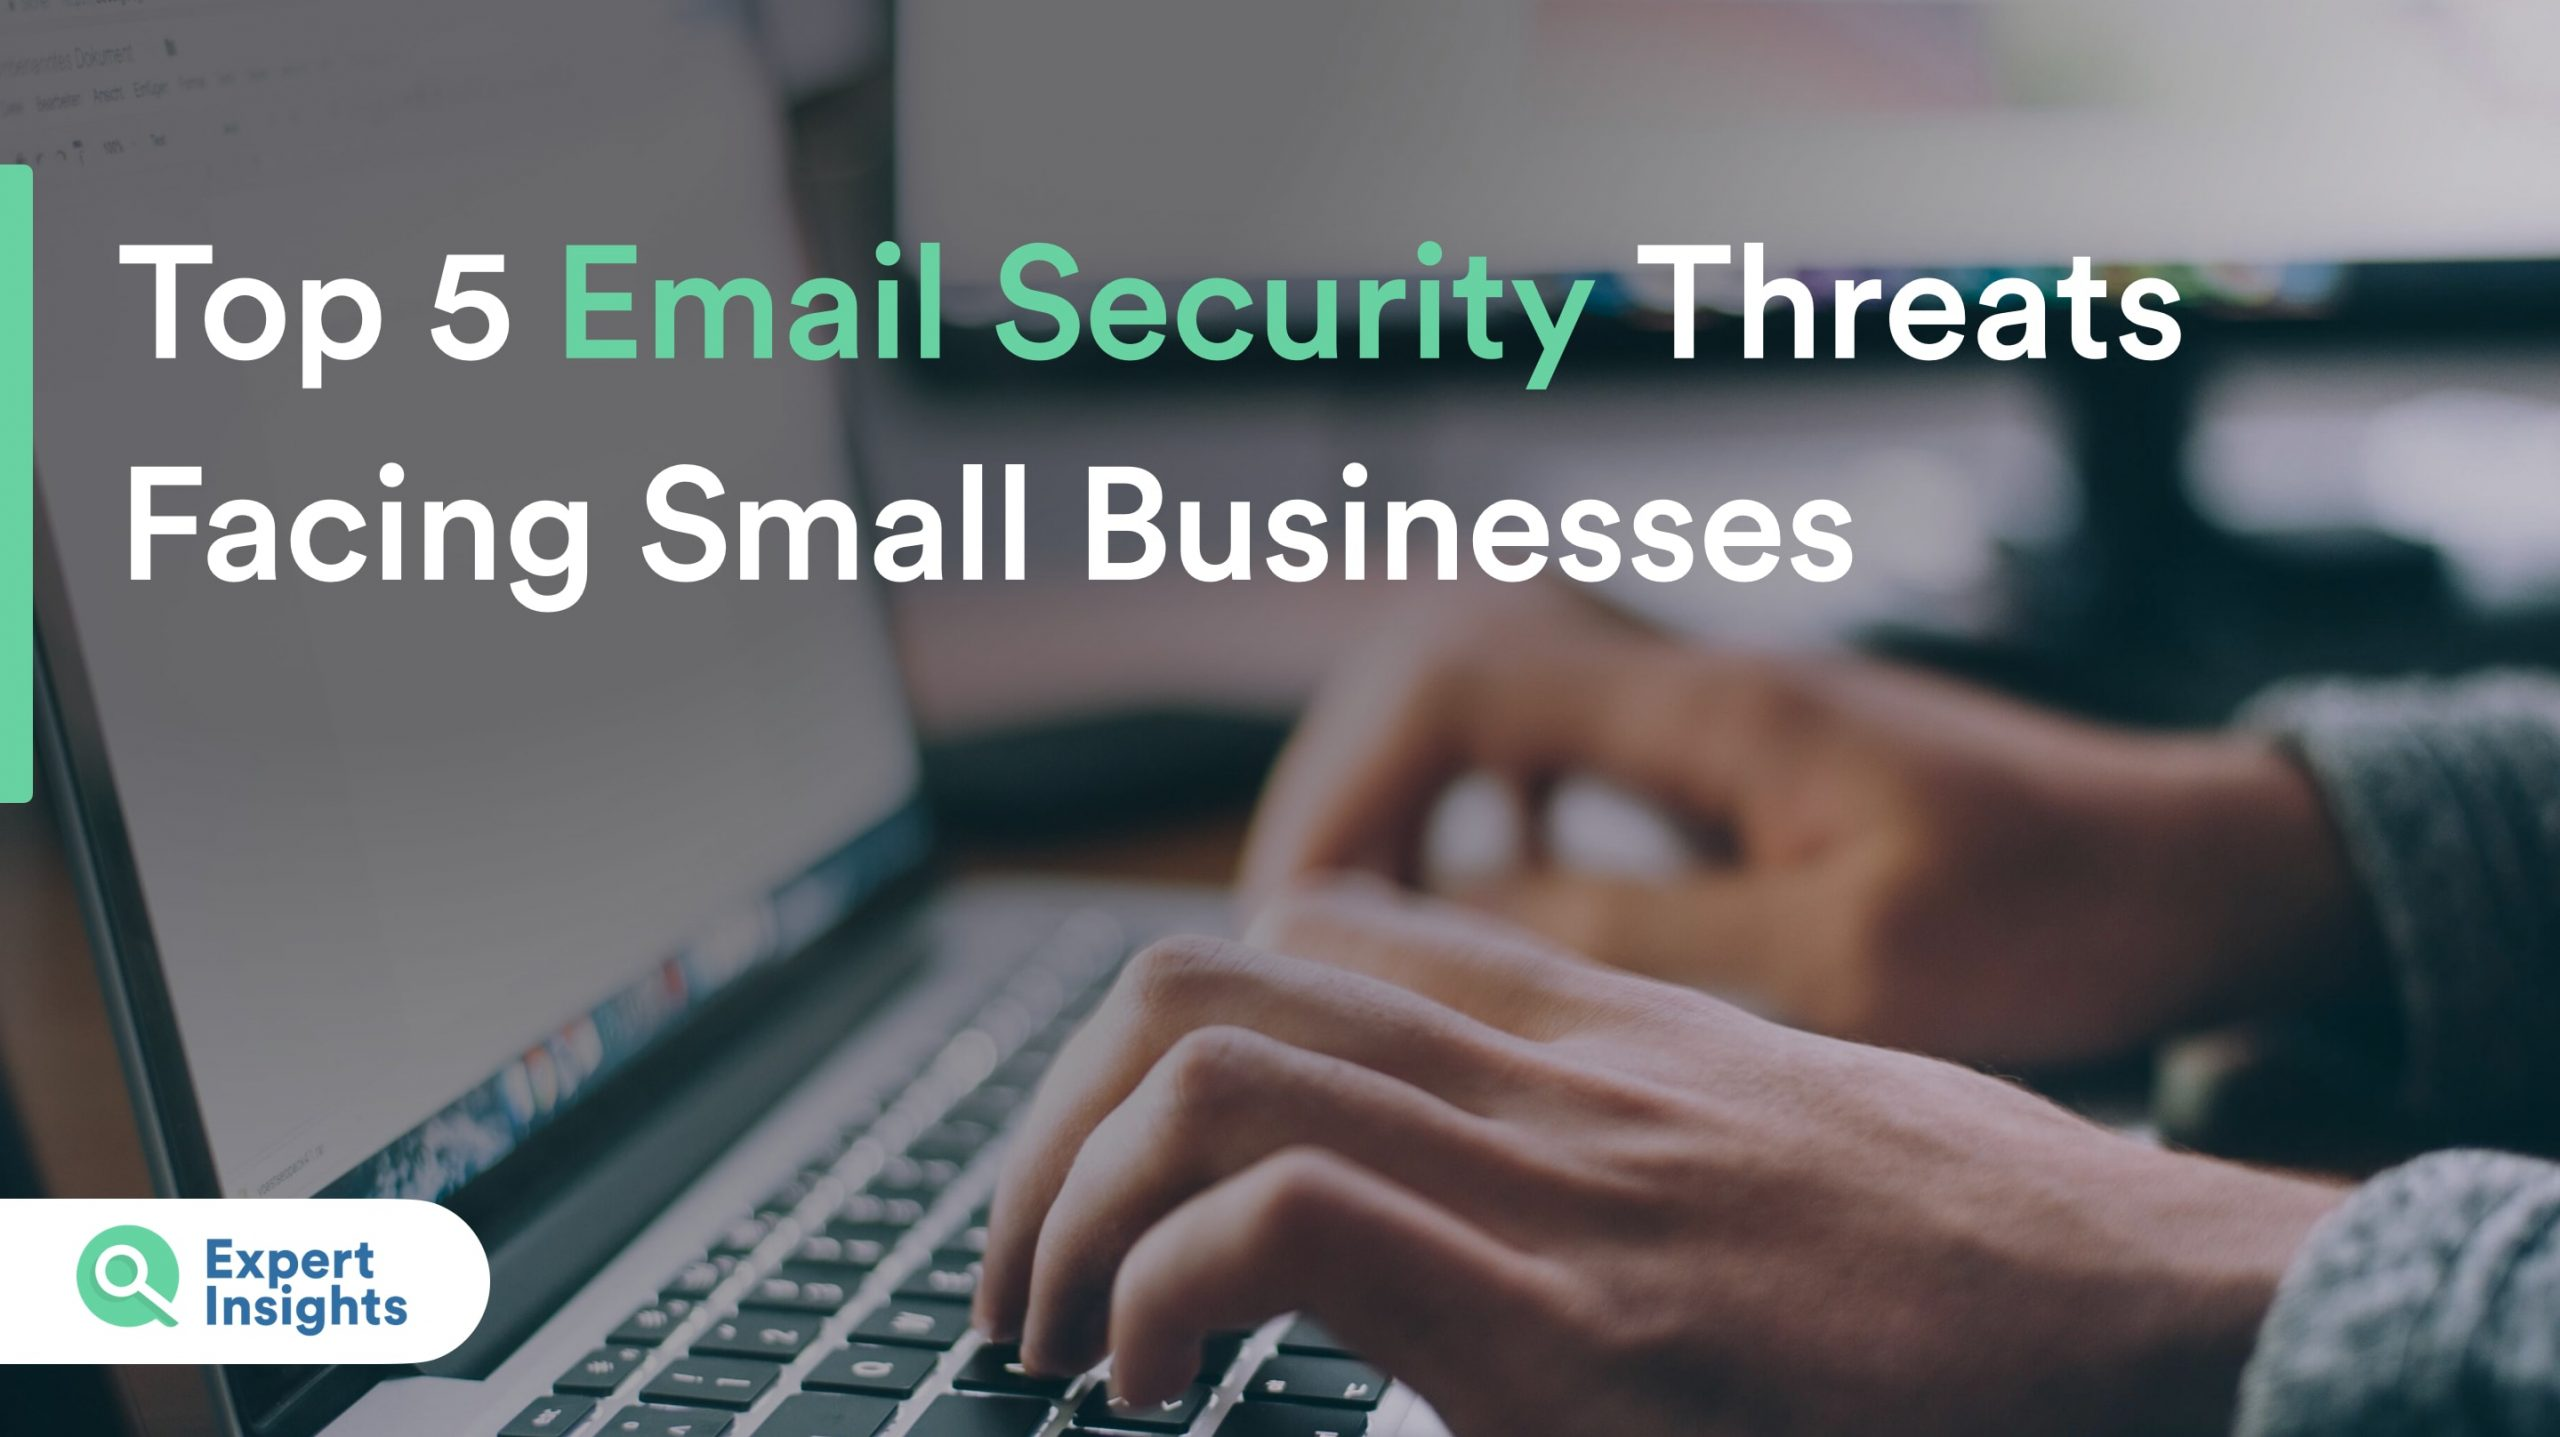 Top 5 Email Security Threats Small Businesses Face